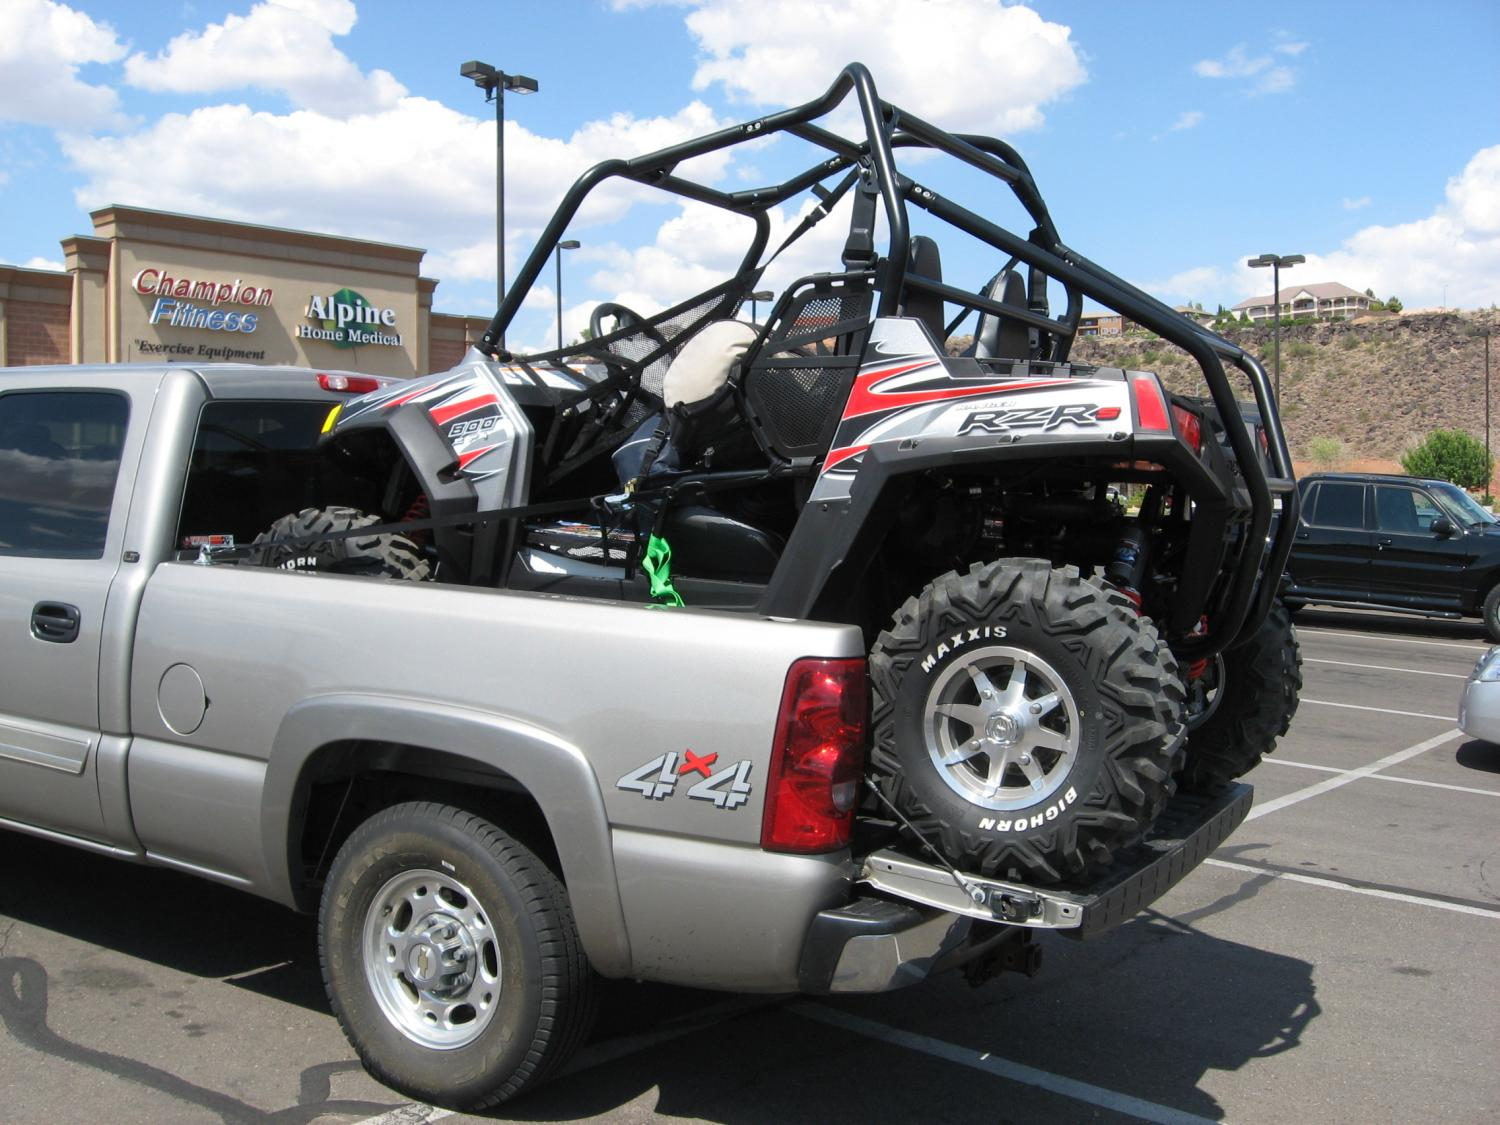 Ford F150 Rack >> Rzr 800 in '10 SCrew Short Bed - Ford F150 Forum - Community of Ford Truck Fans